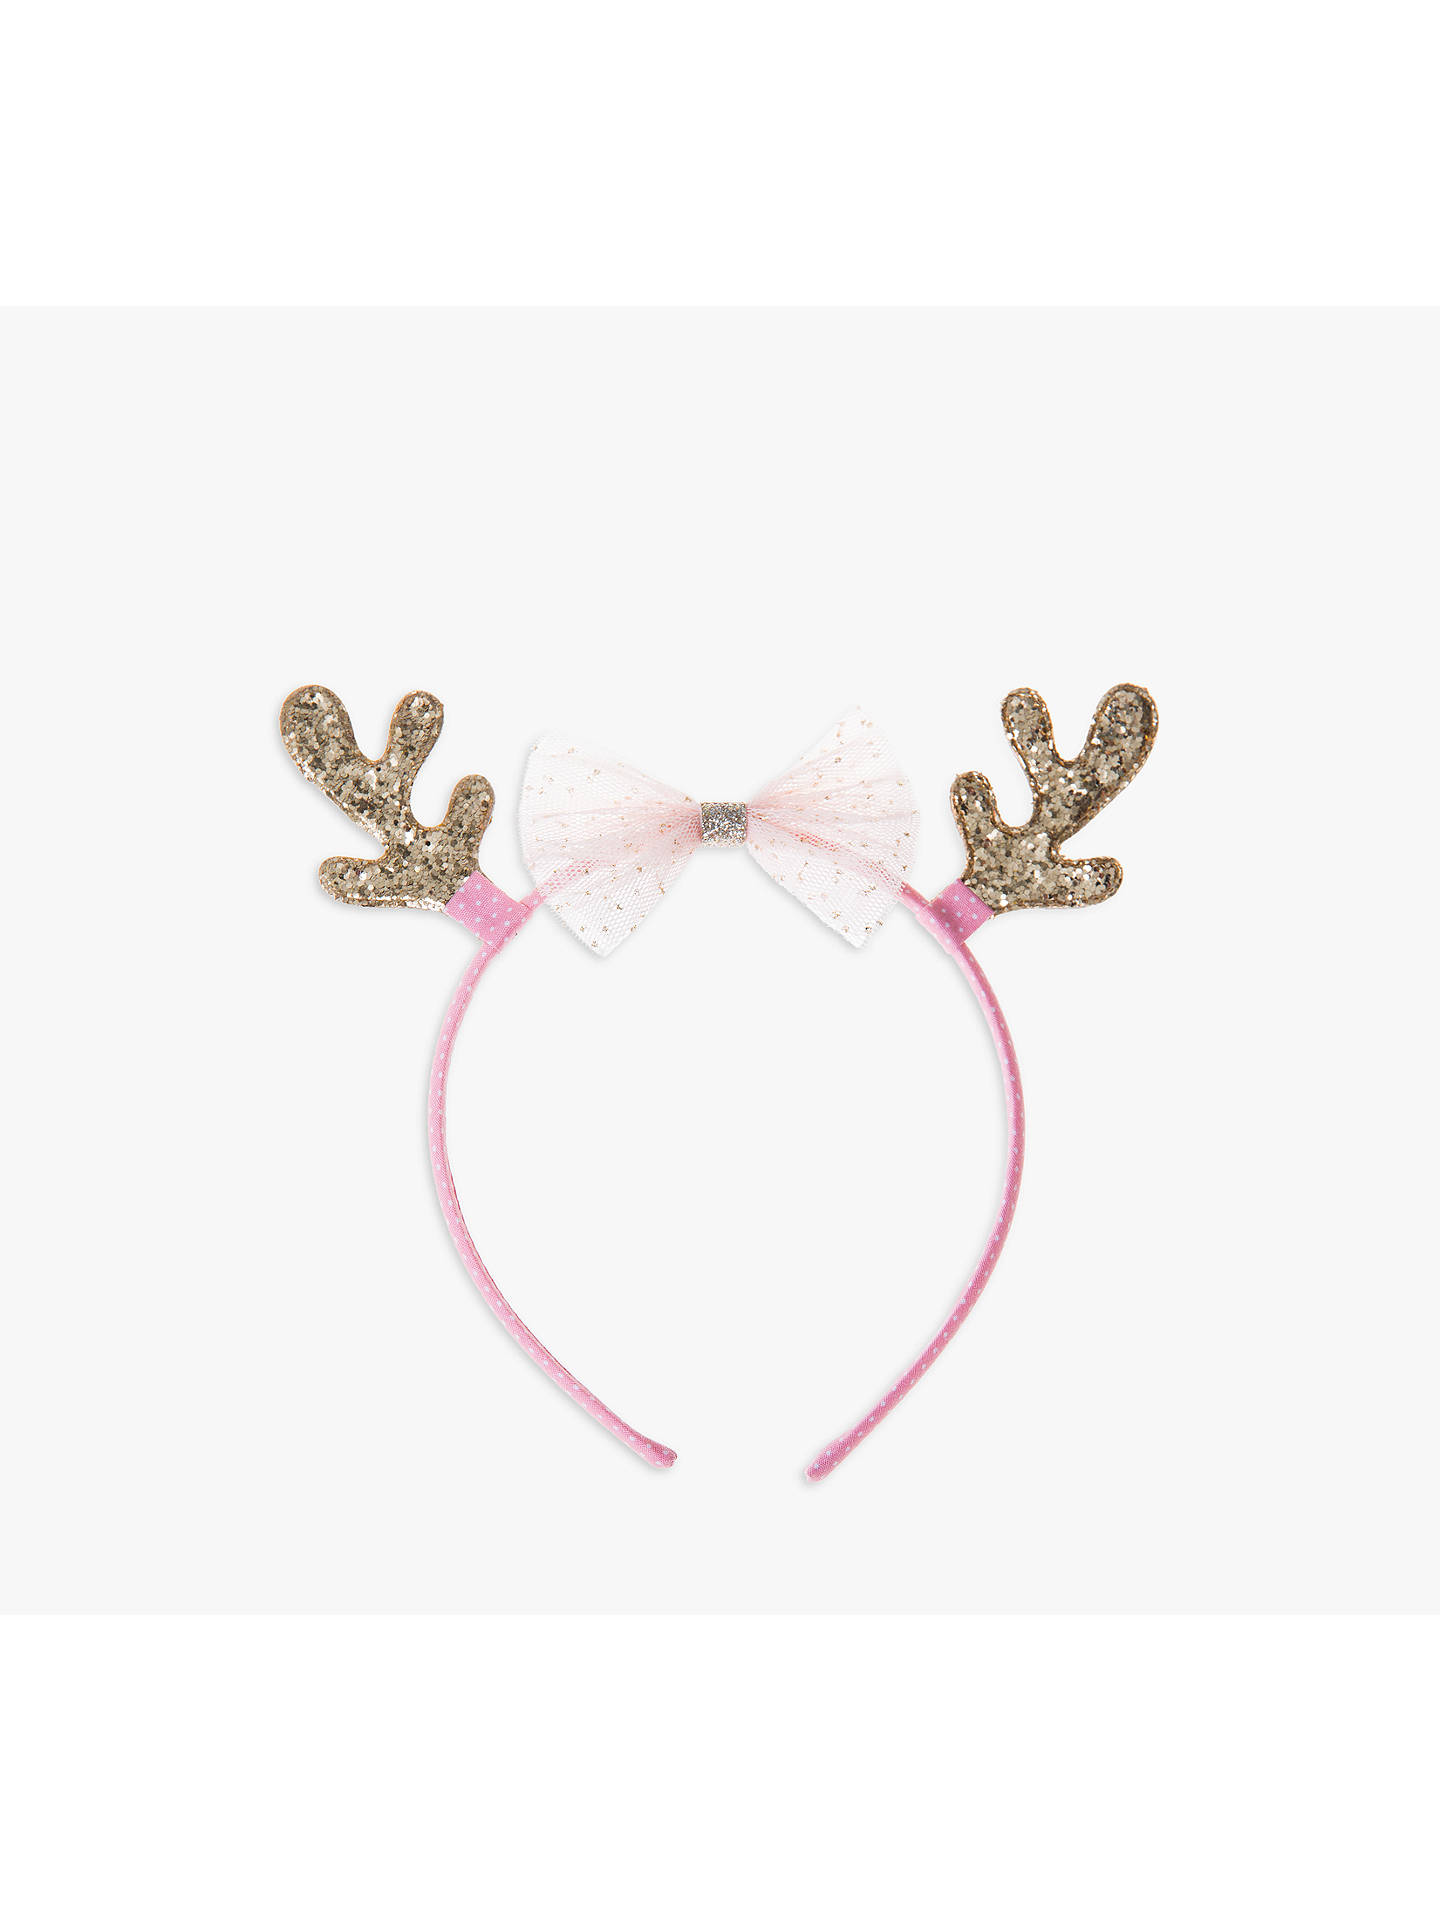 BuyRockahula Children's Glittery Reindeer Headband, Pink/Gold Online at johnlewis.com